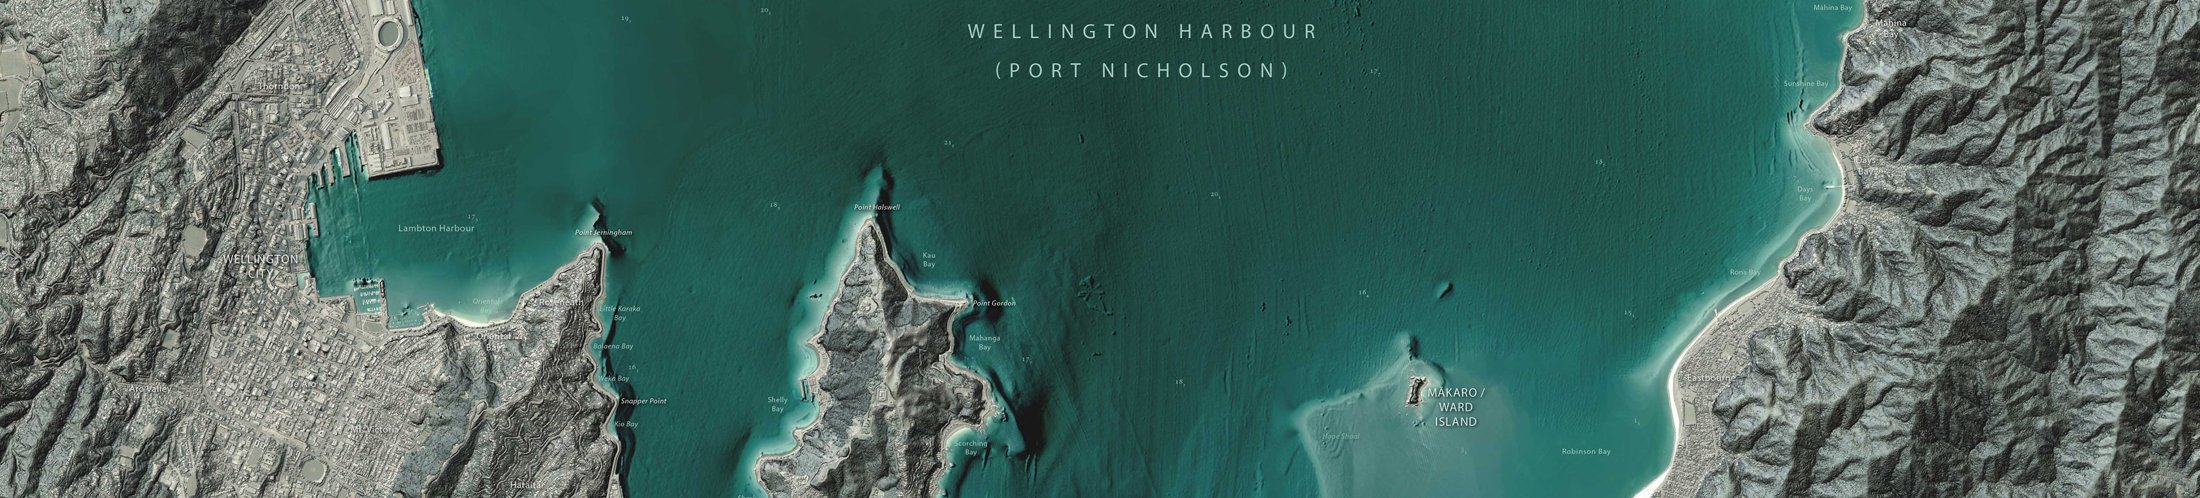 wellington_harbour_button